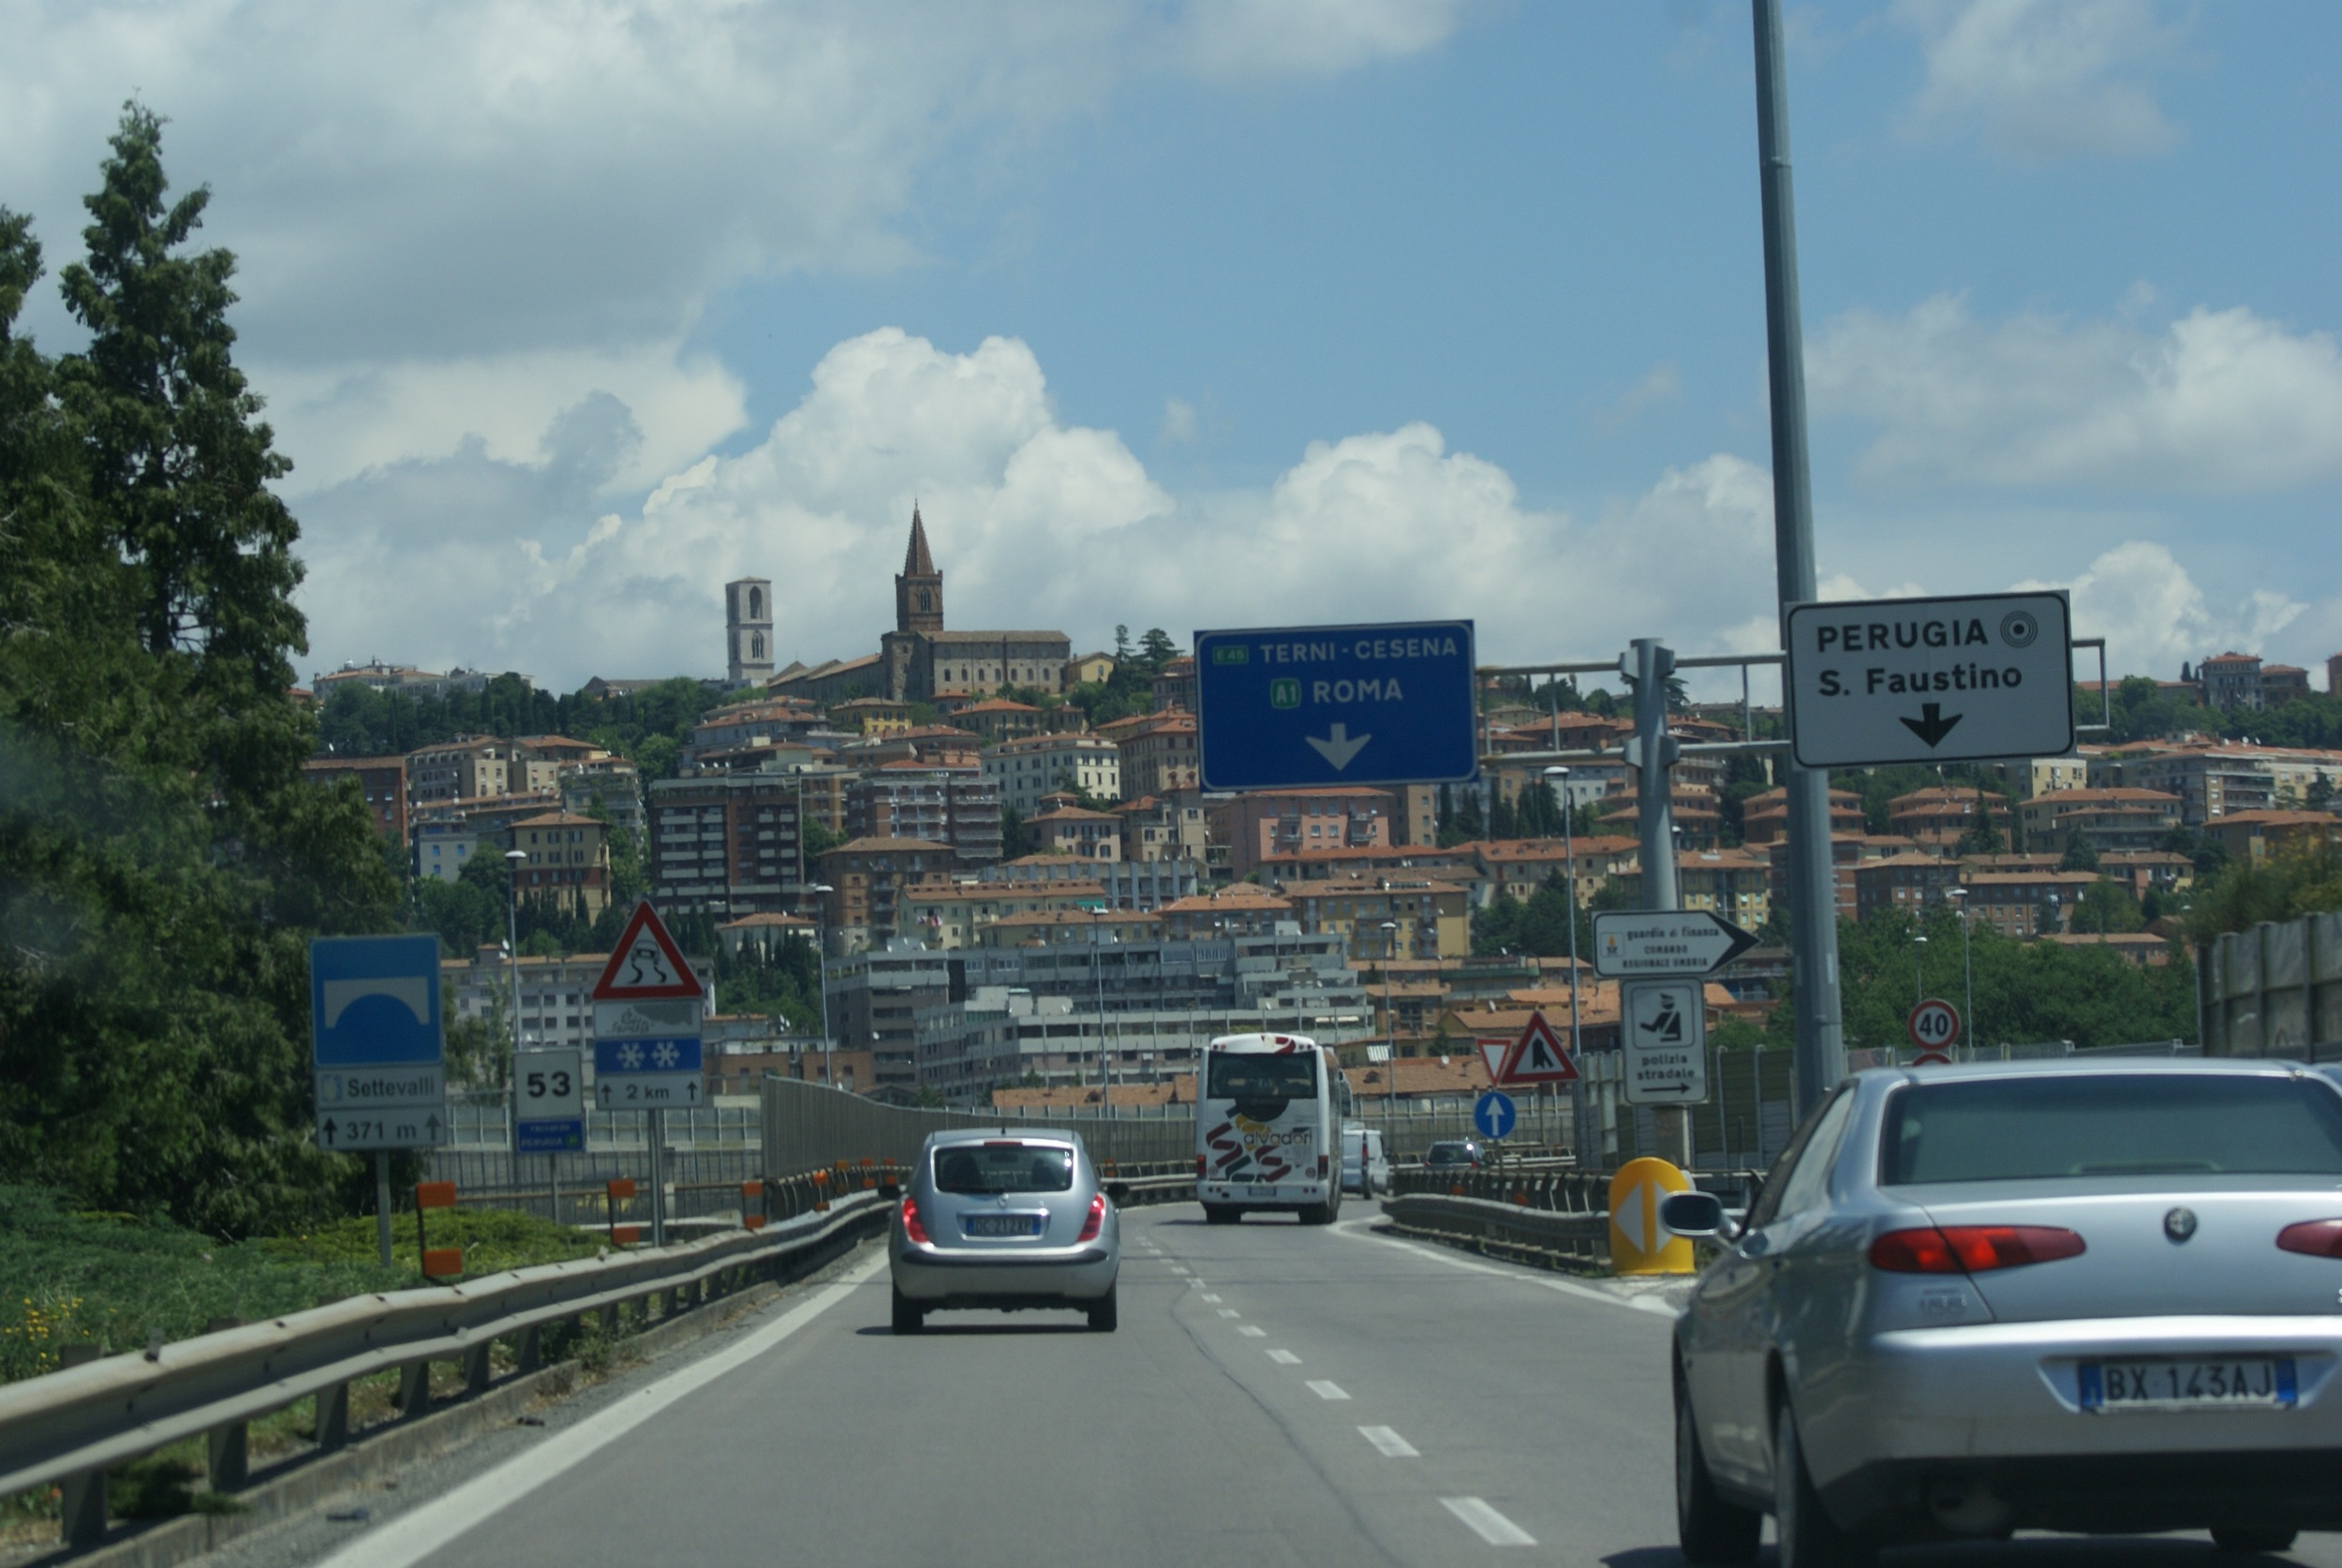 On the road to Assisi driving through Perugia.